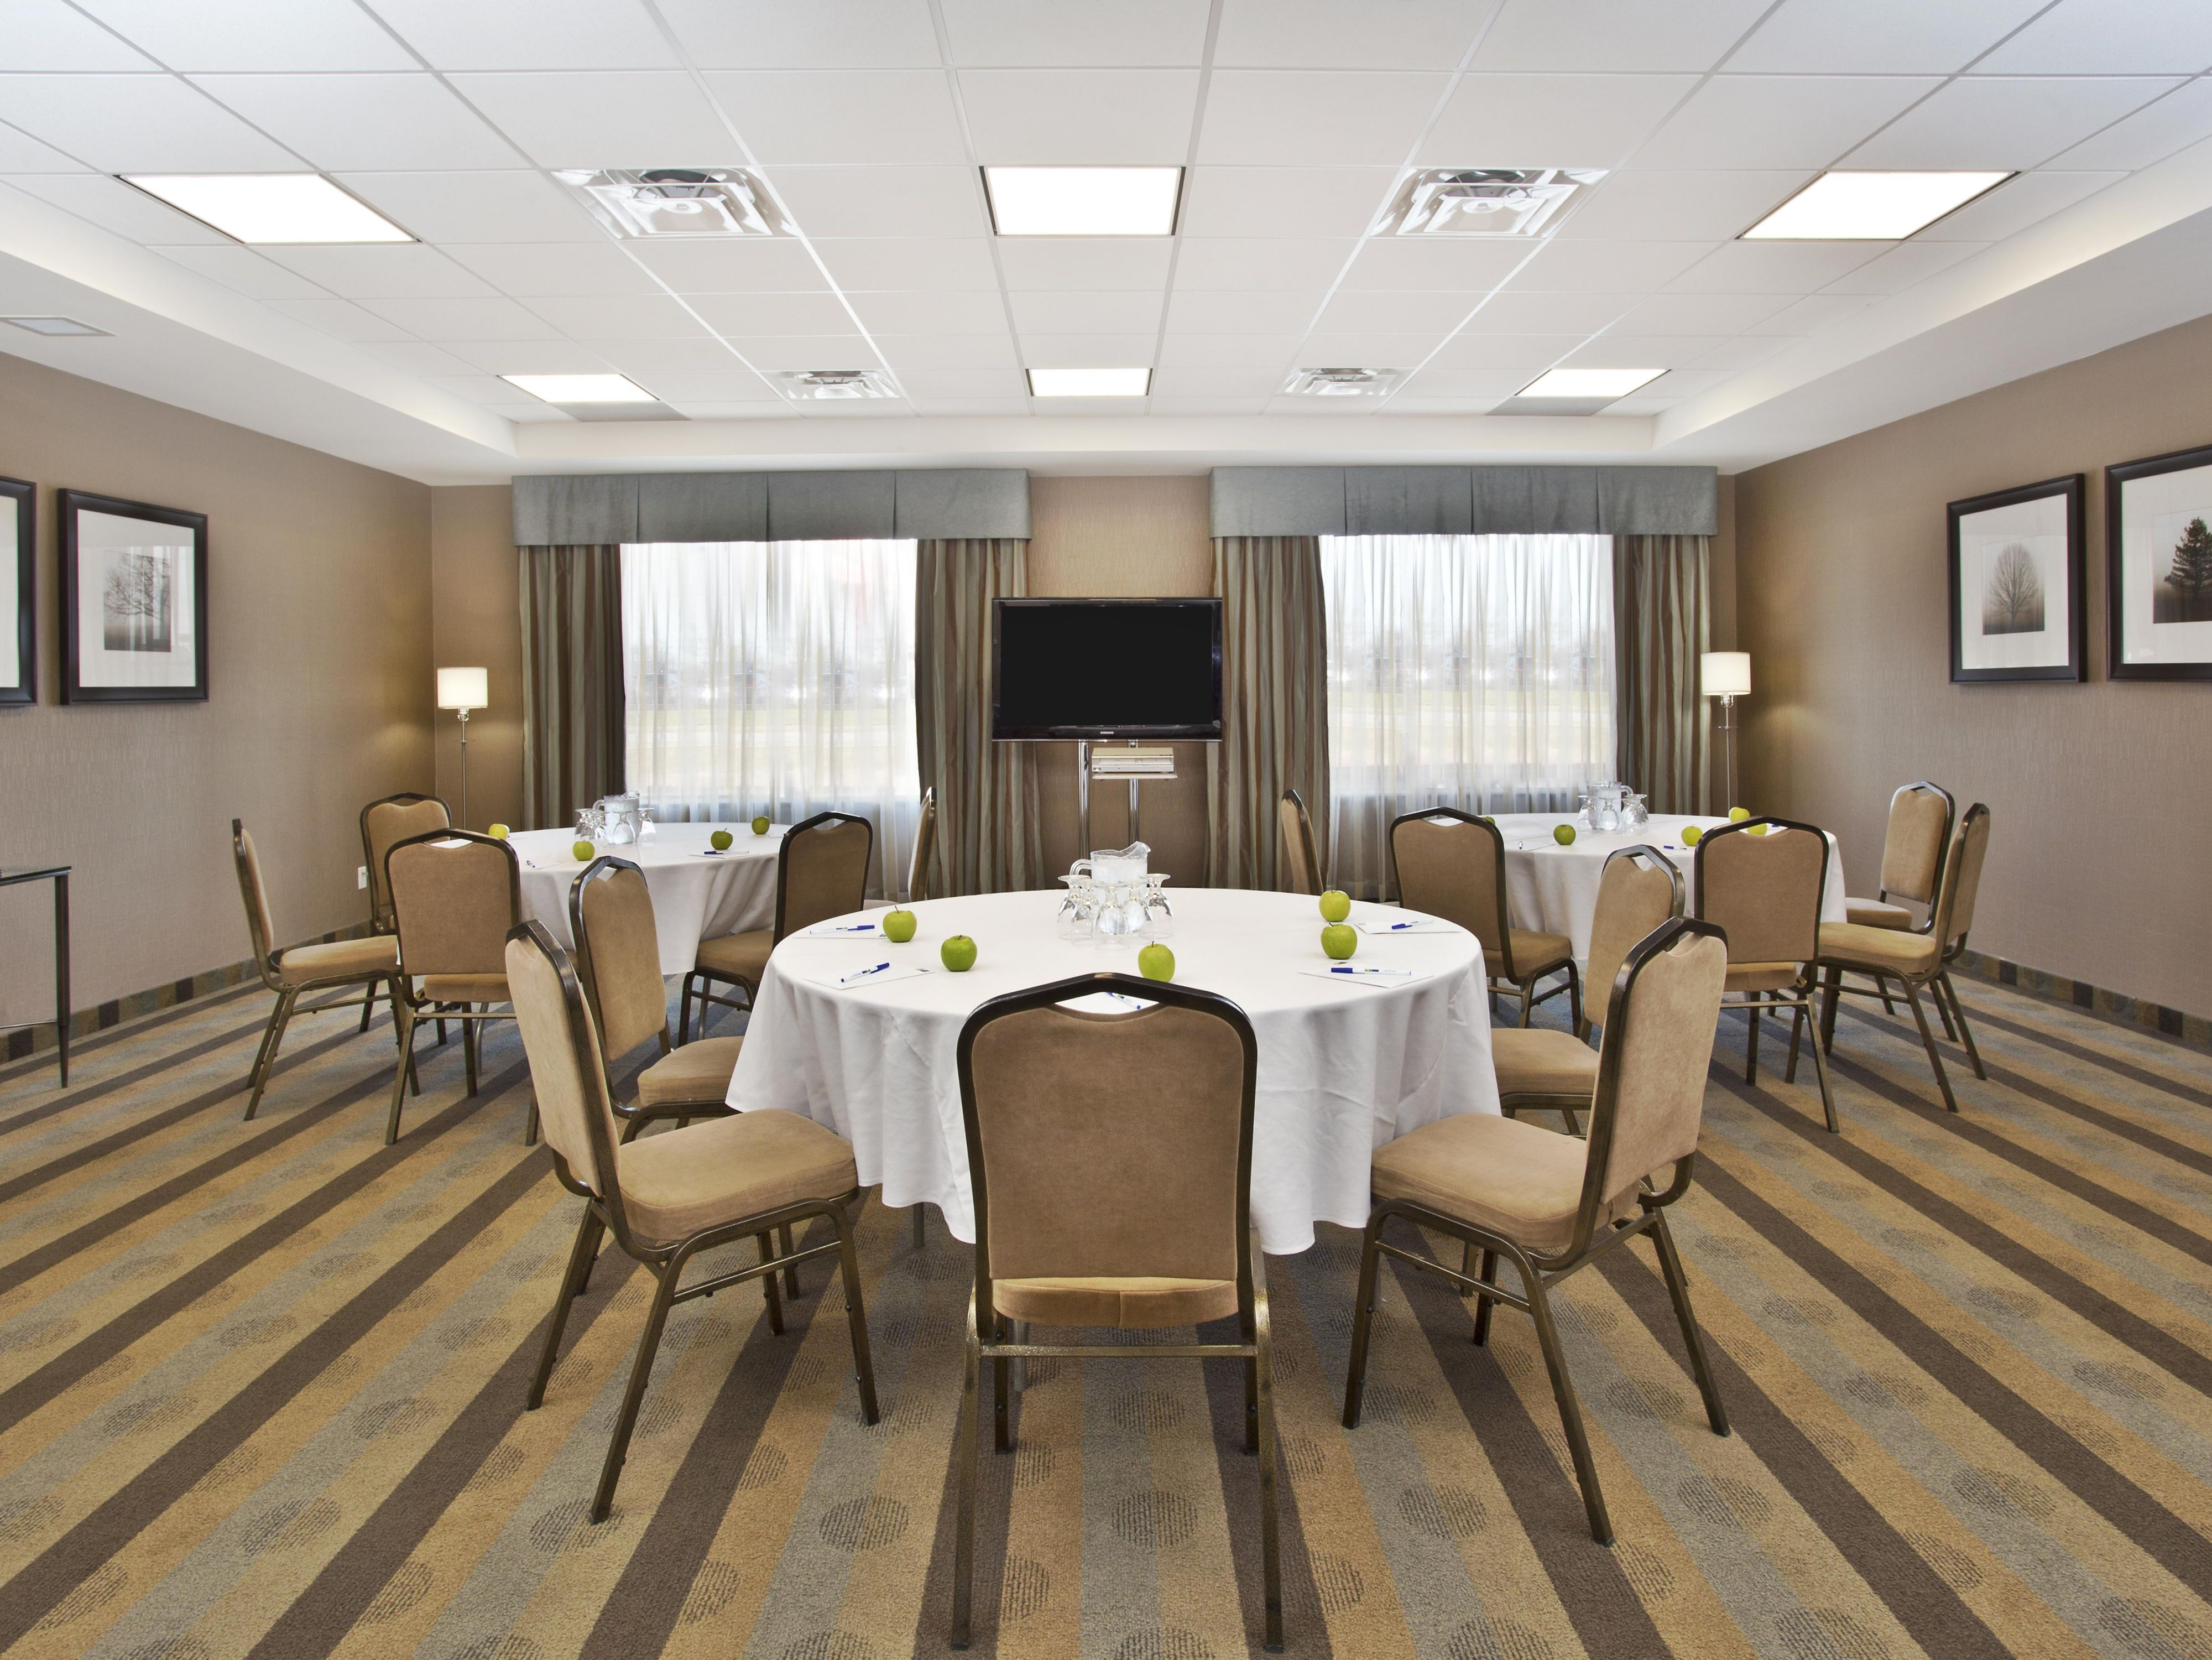 Meeting room in a small banquet format